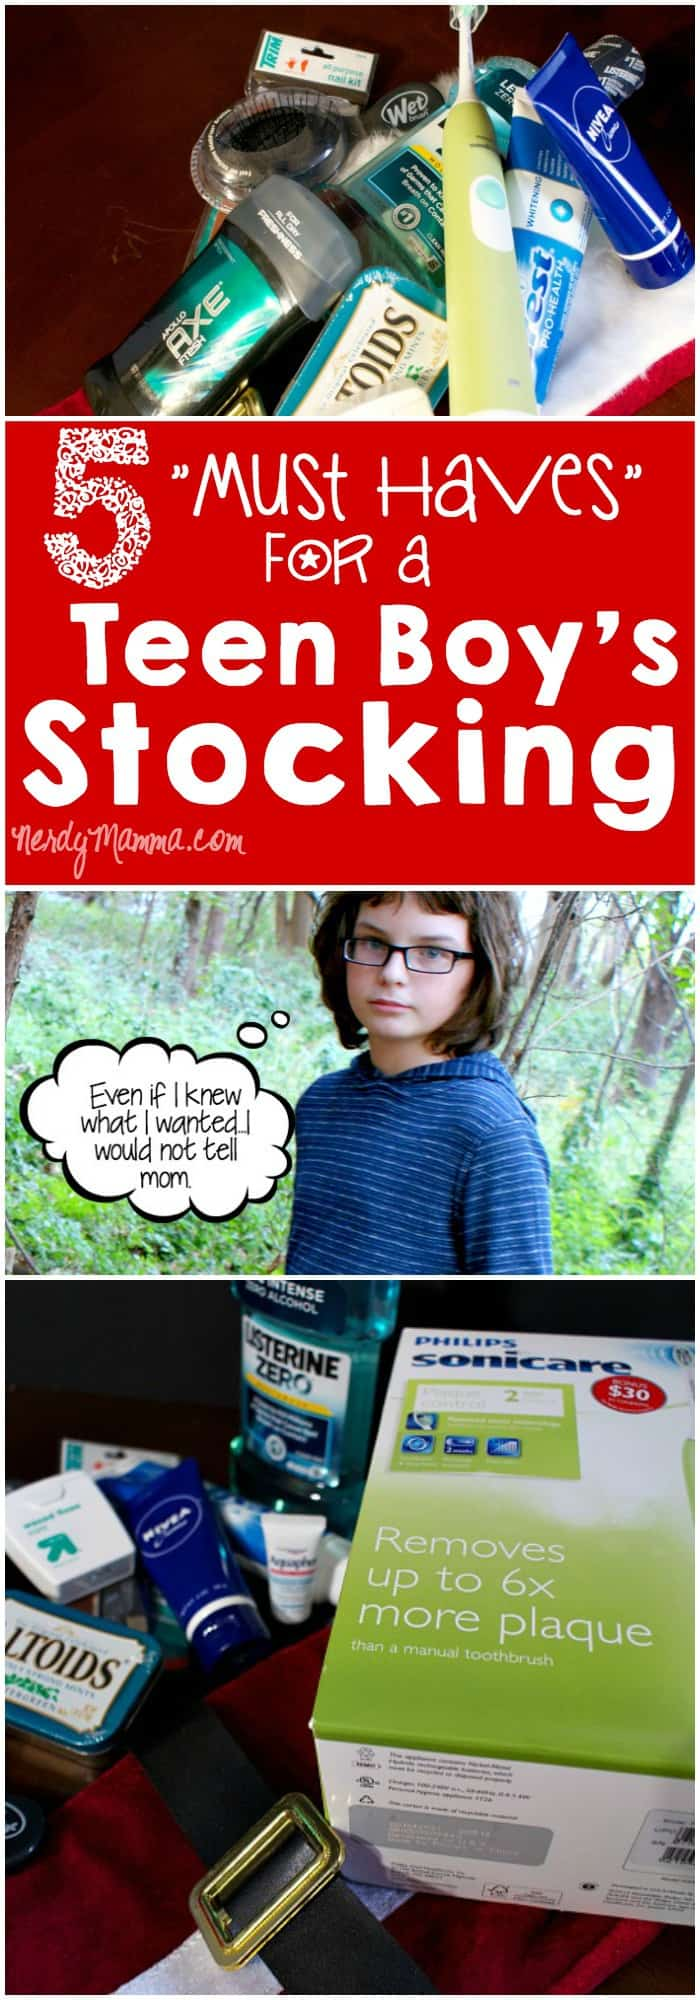 These 5 Must Haves for a teen boy's Christmas stocking are so spot-on. And FUNNY. #4...LOL!